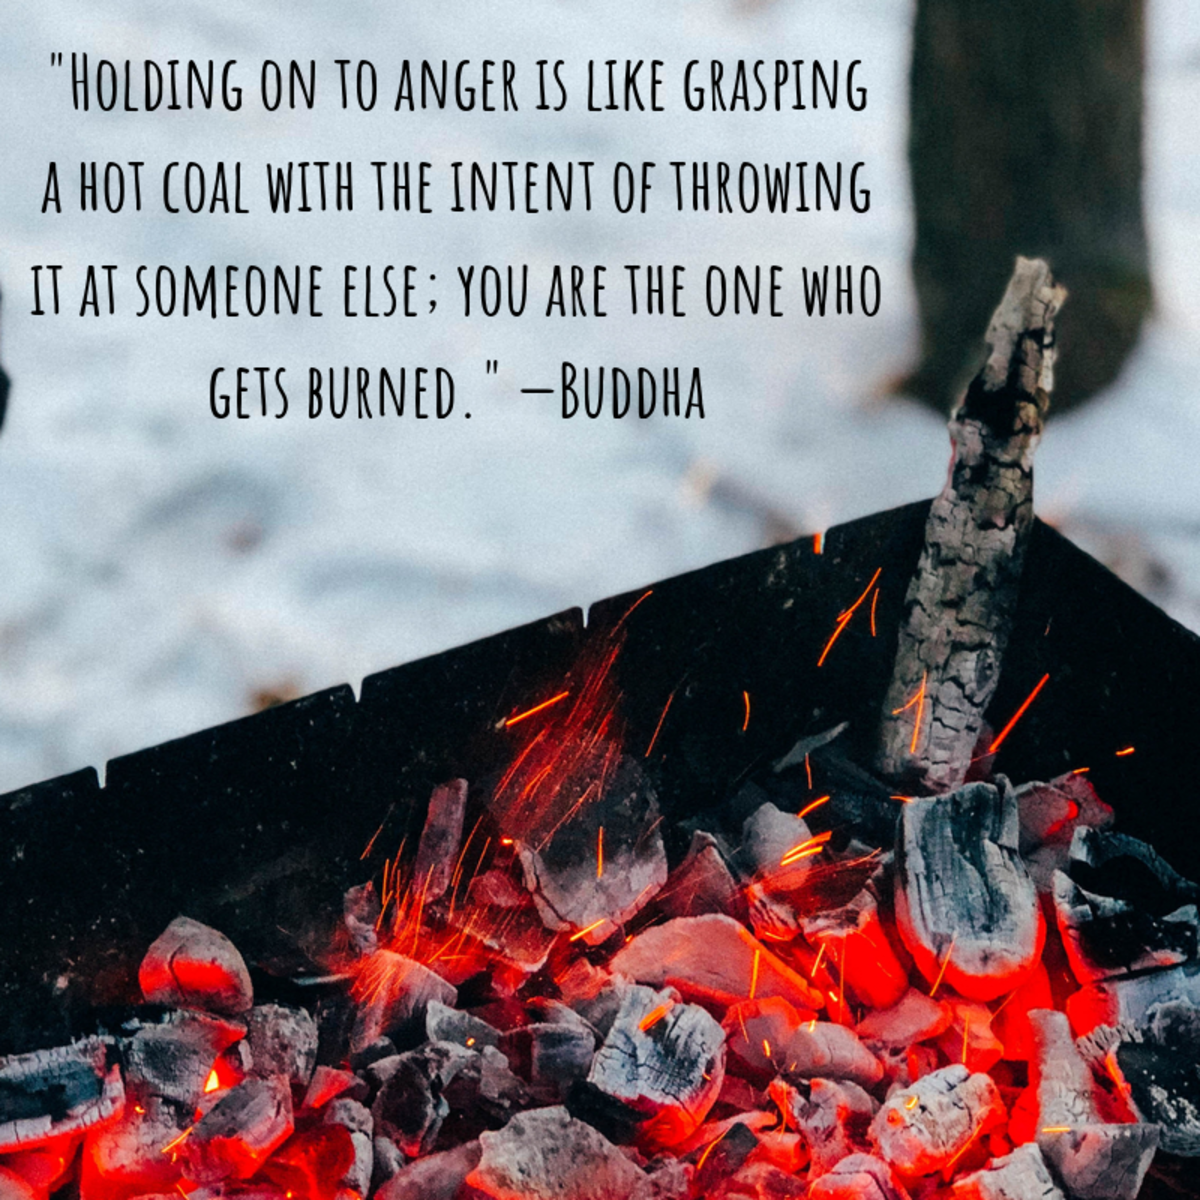 """Holding on to anger is like grasping a hot coal with the intent of throwing it at someone else; you are the one who gets burned."" —Buddha"